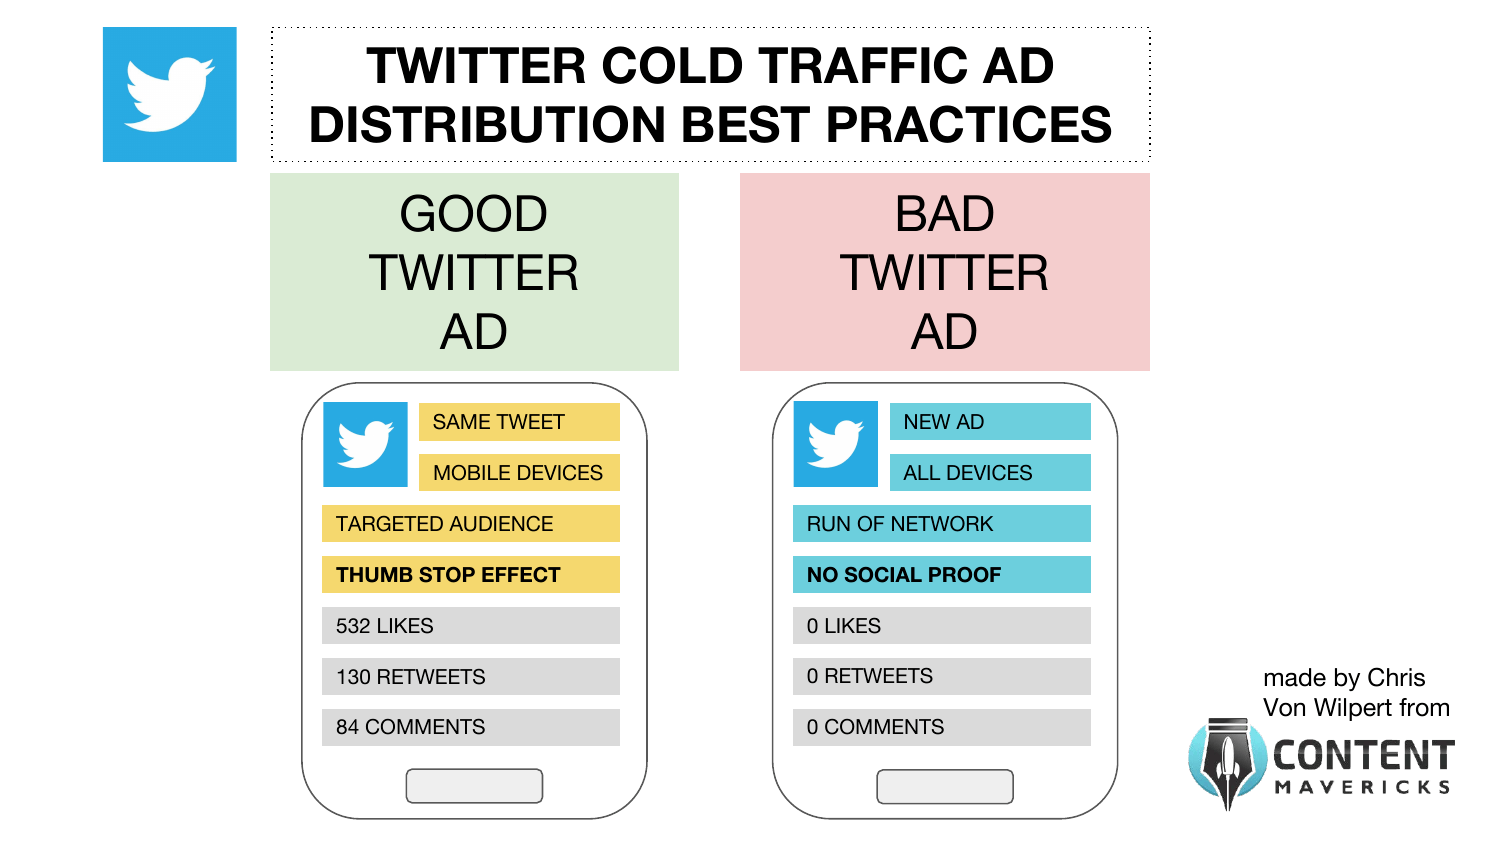 twitter cold traffic ad content distribution best practices image